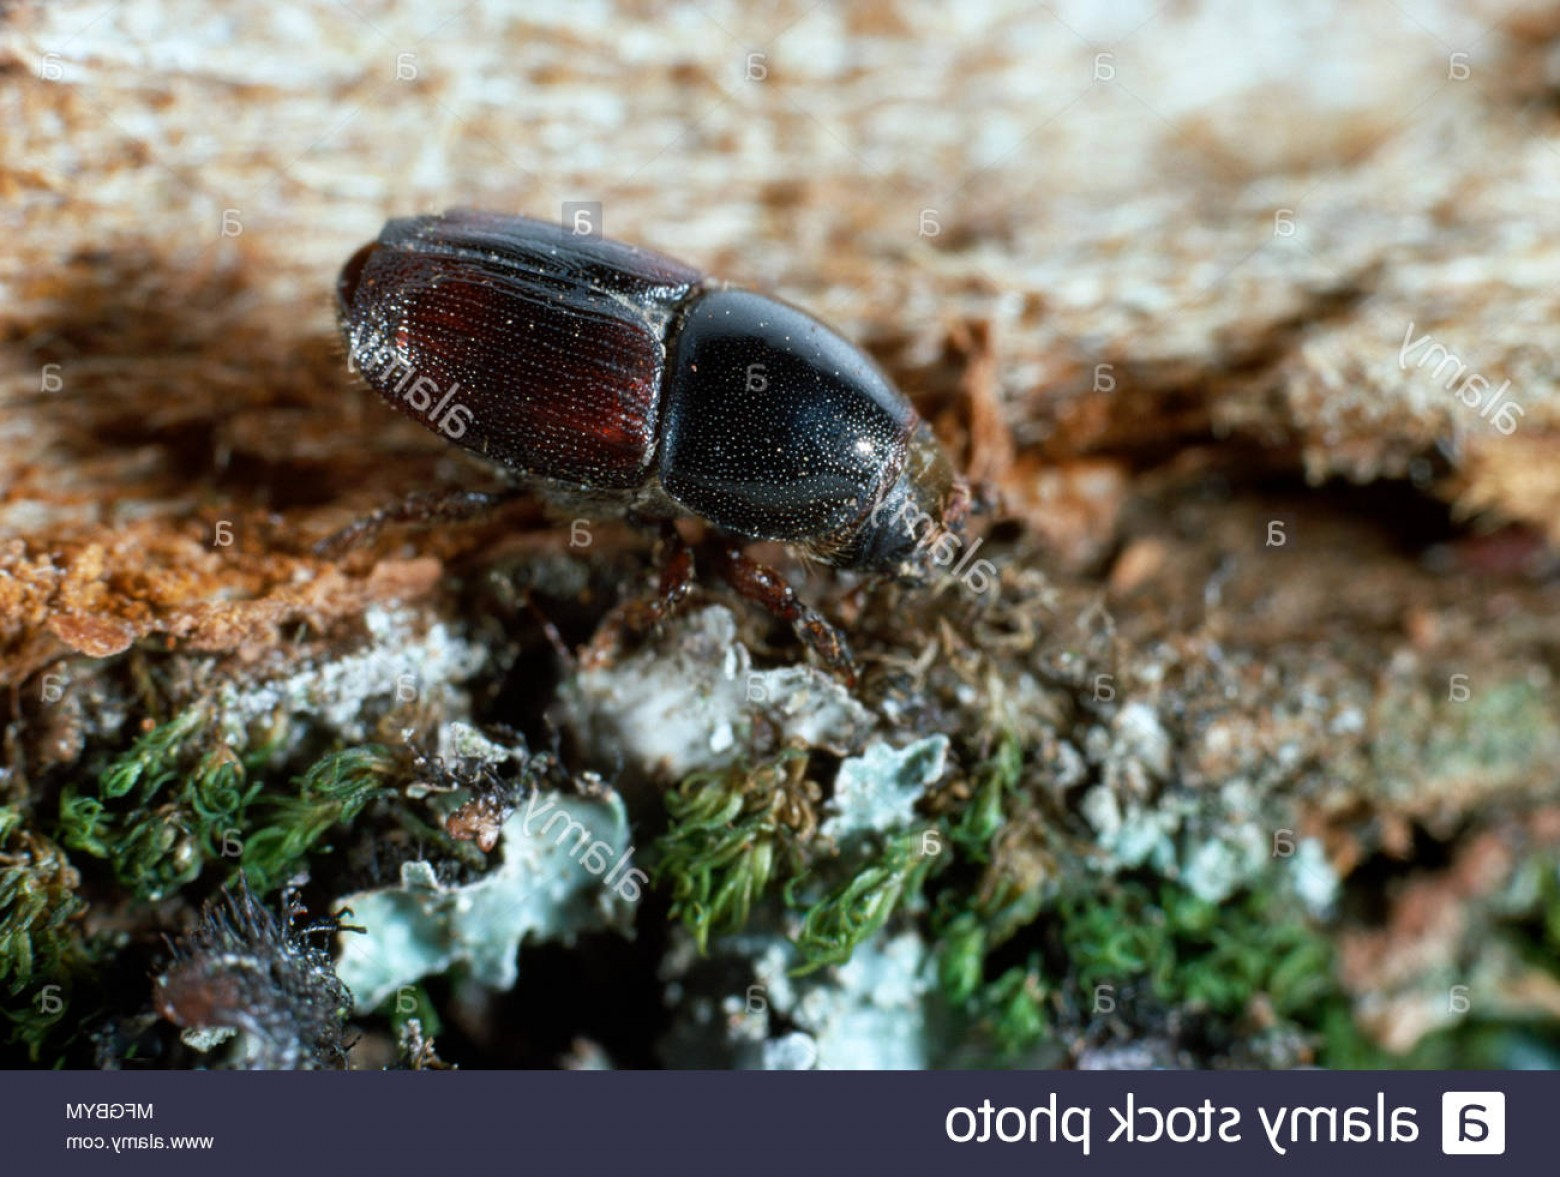 Vectors Diseases Caused By: Elm Bark Beetle Scolytus Scolytus Vector Of Dutch Elm Disease Invades Tree Via Damage Caused By Beetles Image